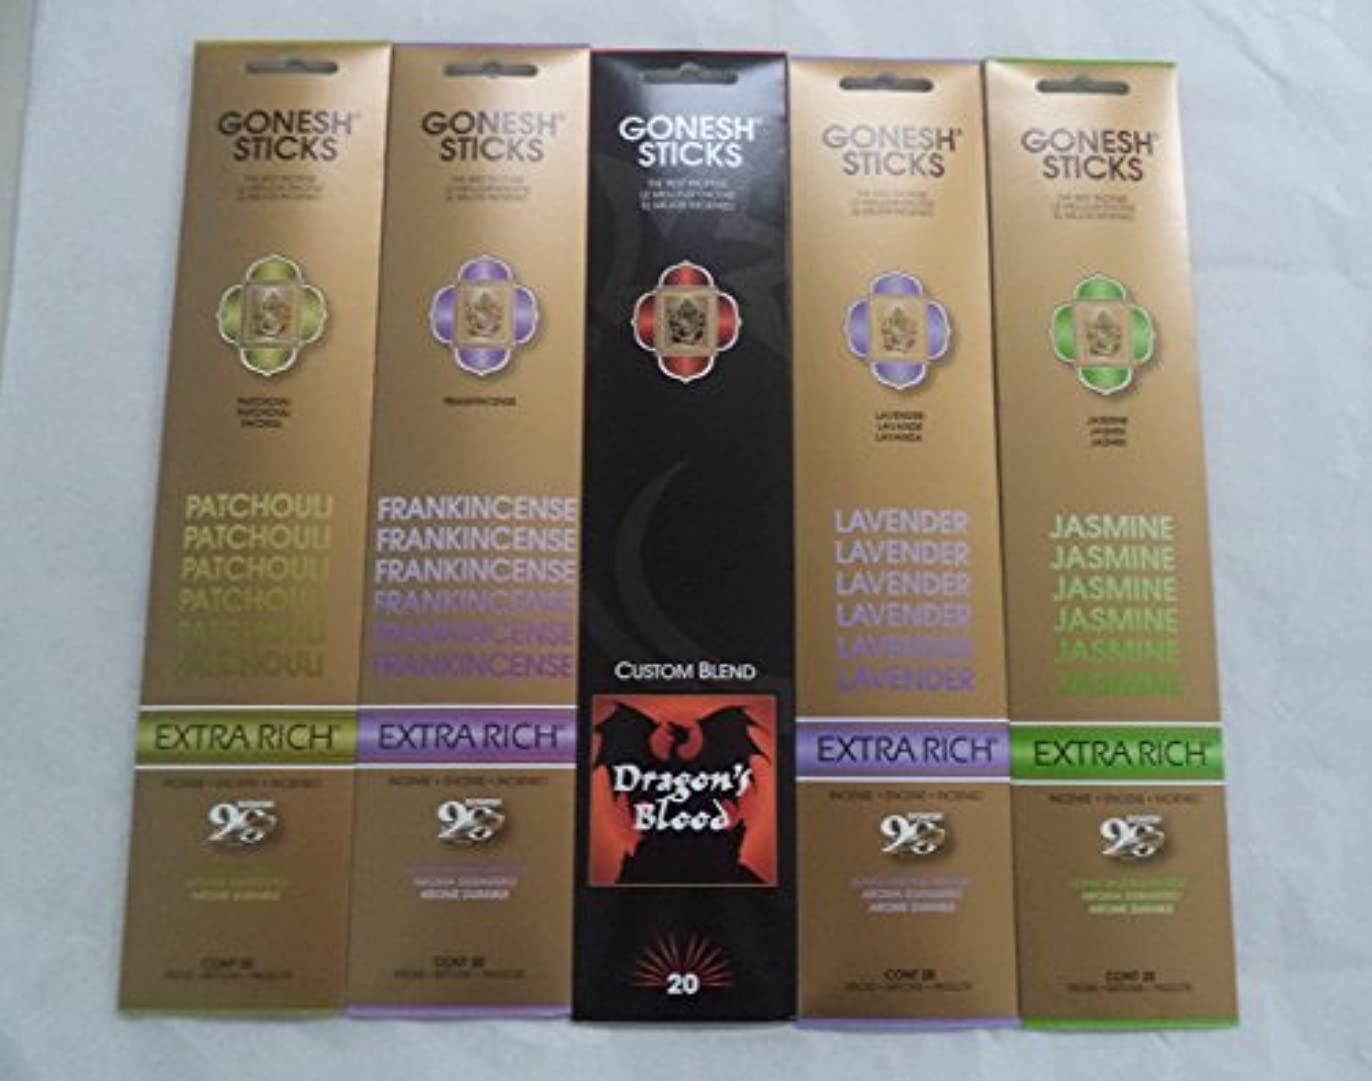 ロードブロッキングドライ対処Gonesh Incense Stick Best SellerコンボVariety Set # 1 5 x 20 = 100 Sticks